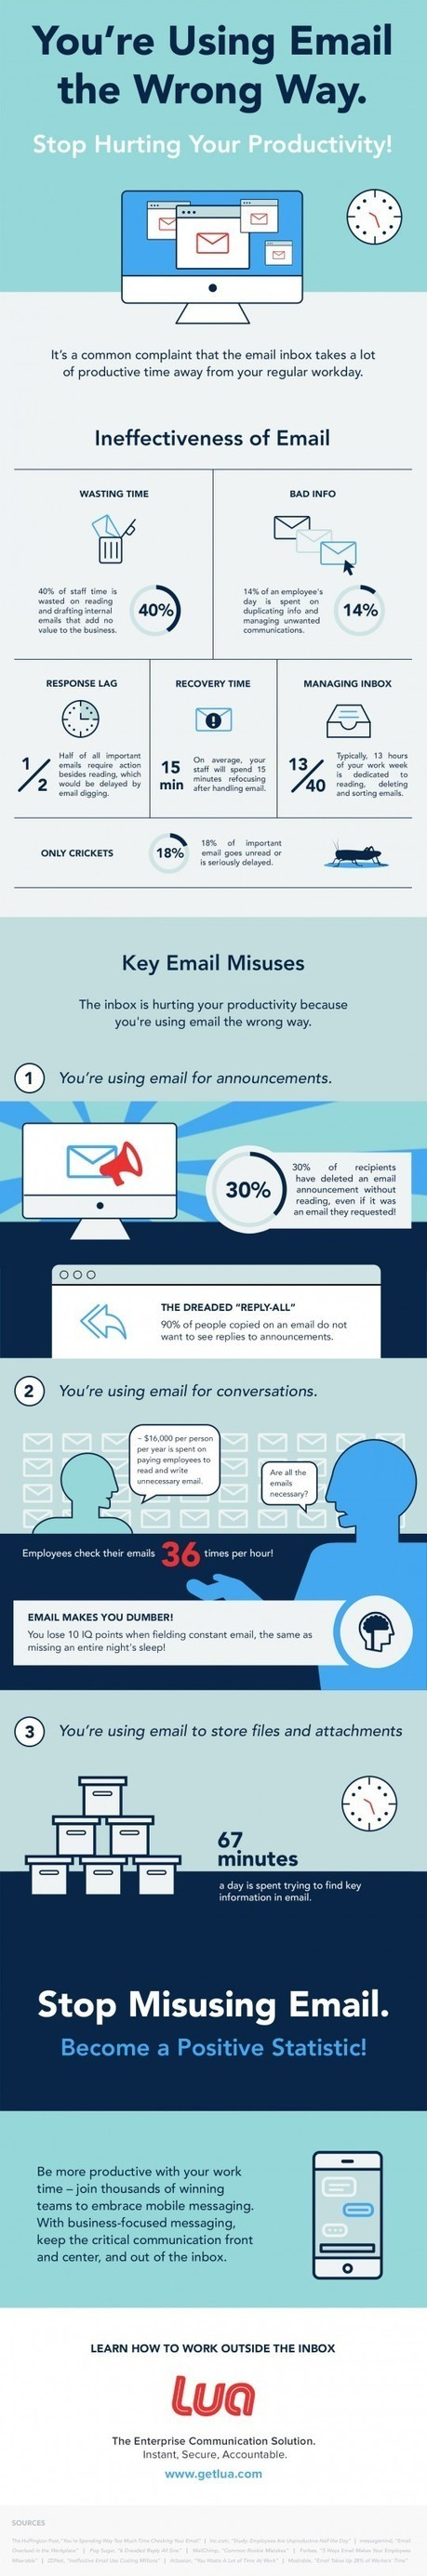 You are Using Email the Wrong Way   Internet Psychology   Scoop.it